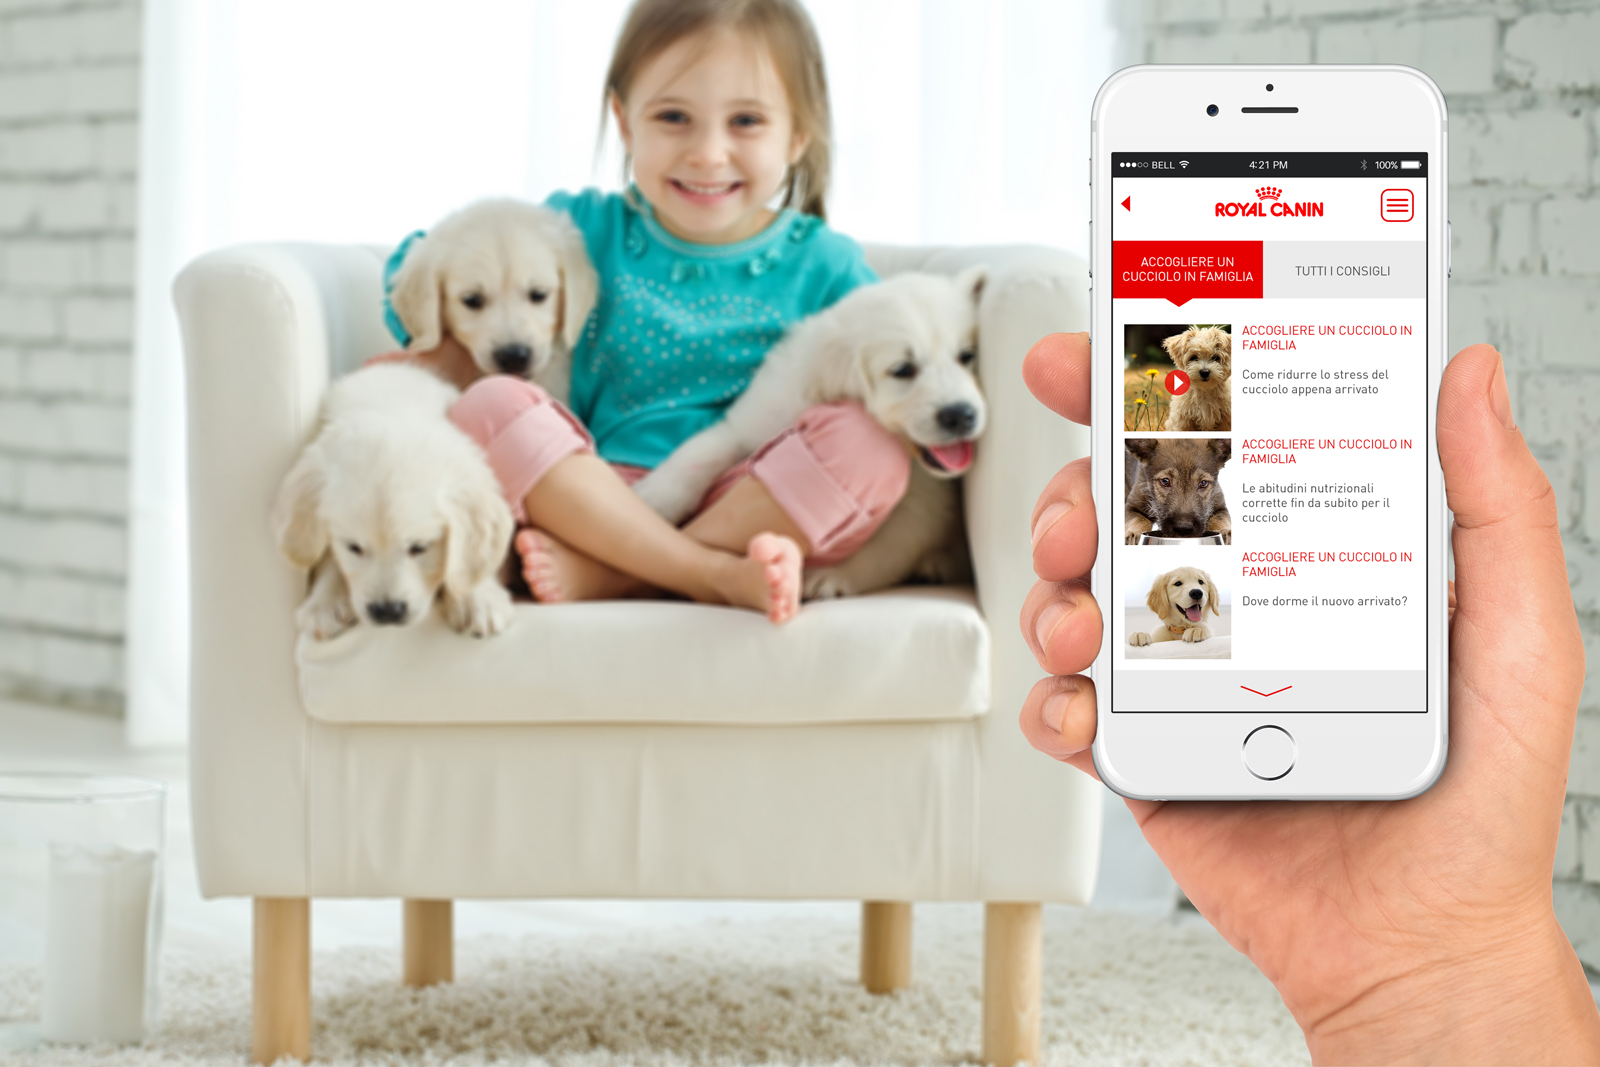 Royal-Canin-[-App-Video-]